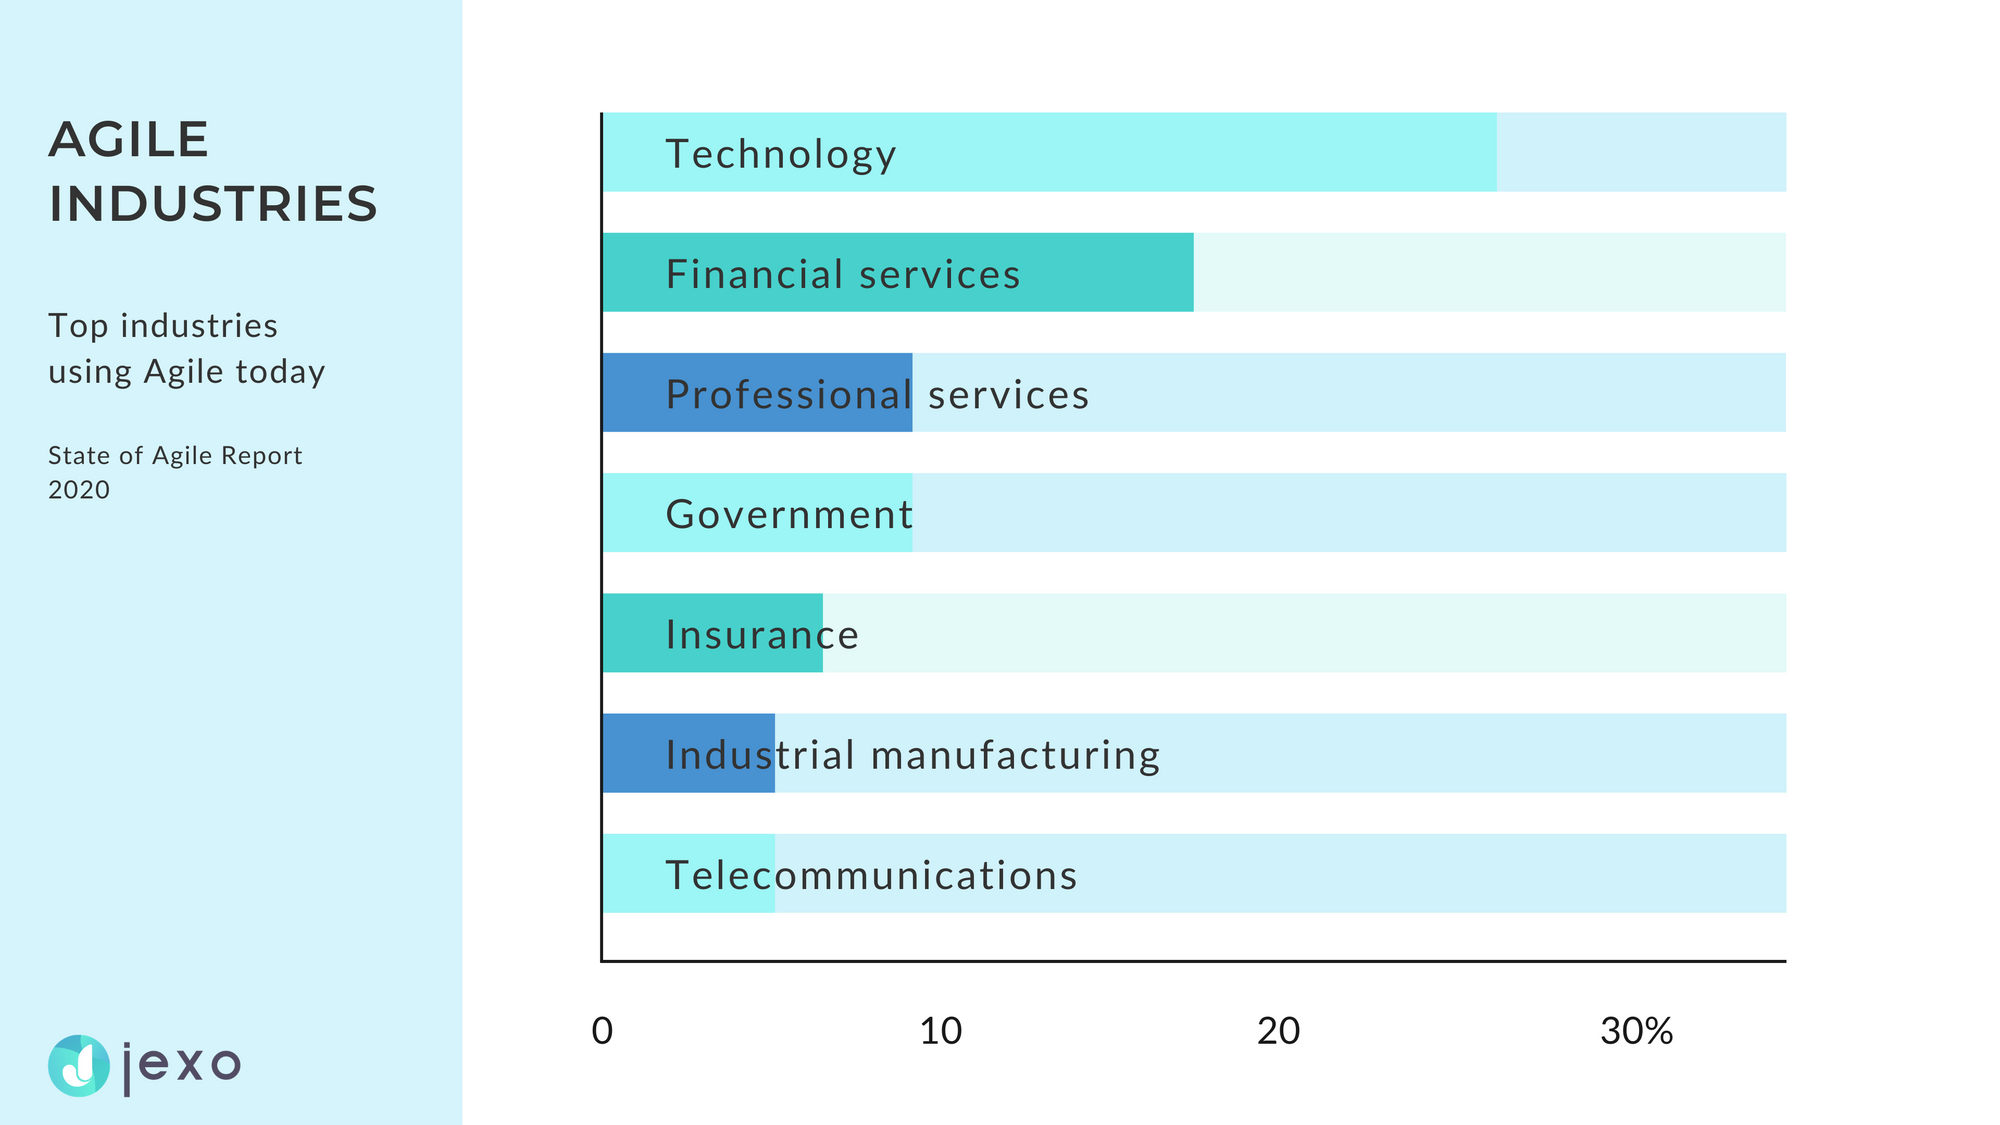 The industries using Agile in 2020